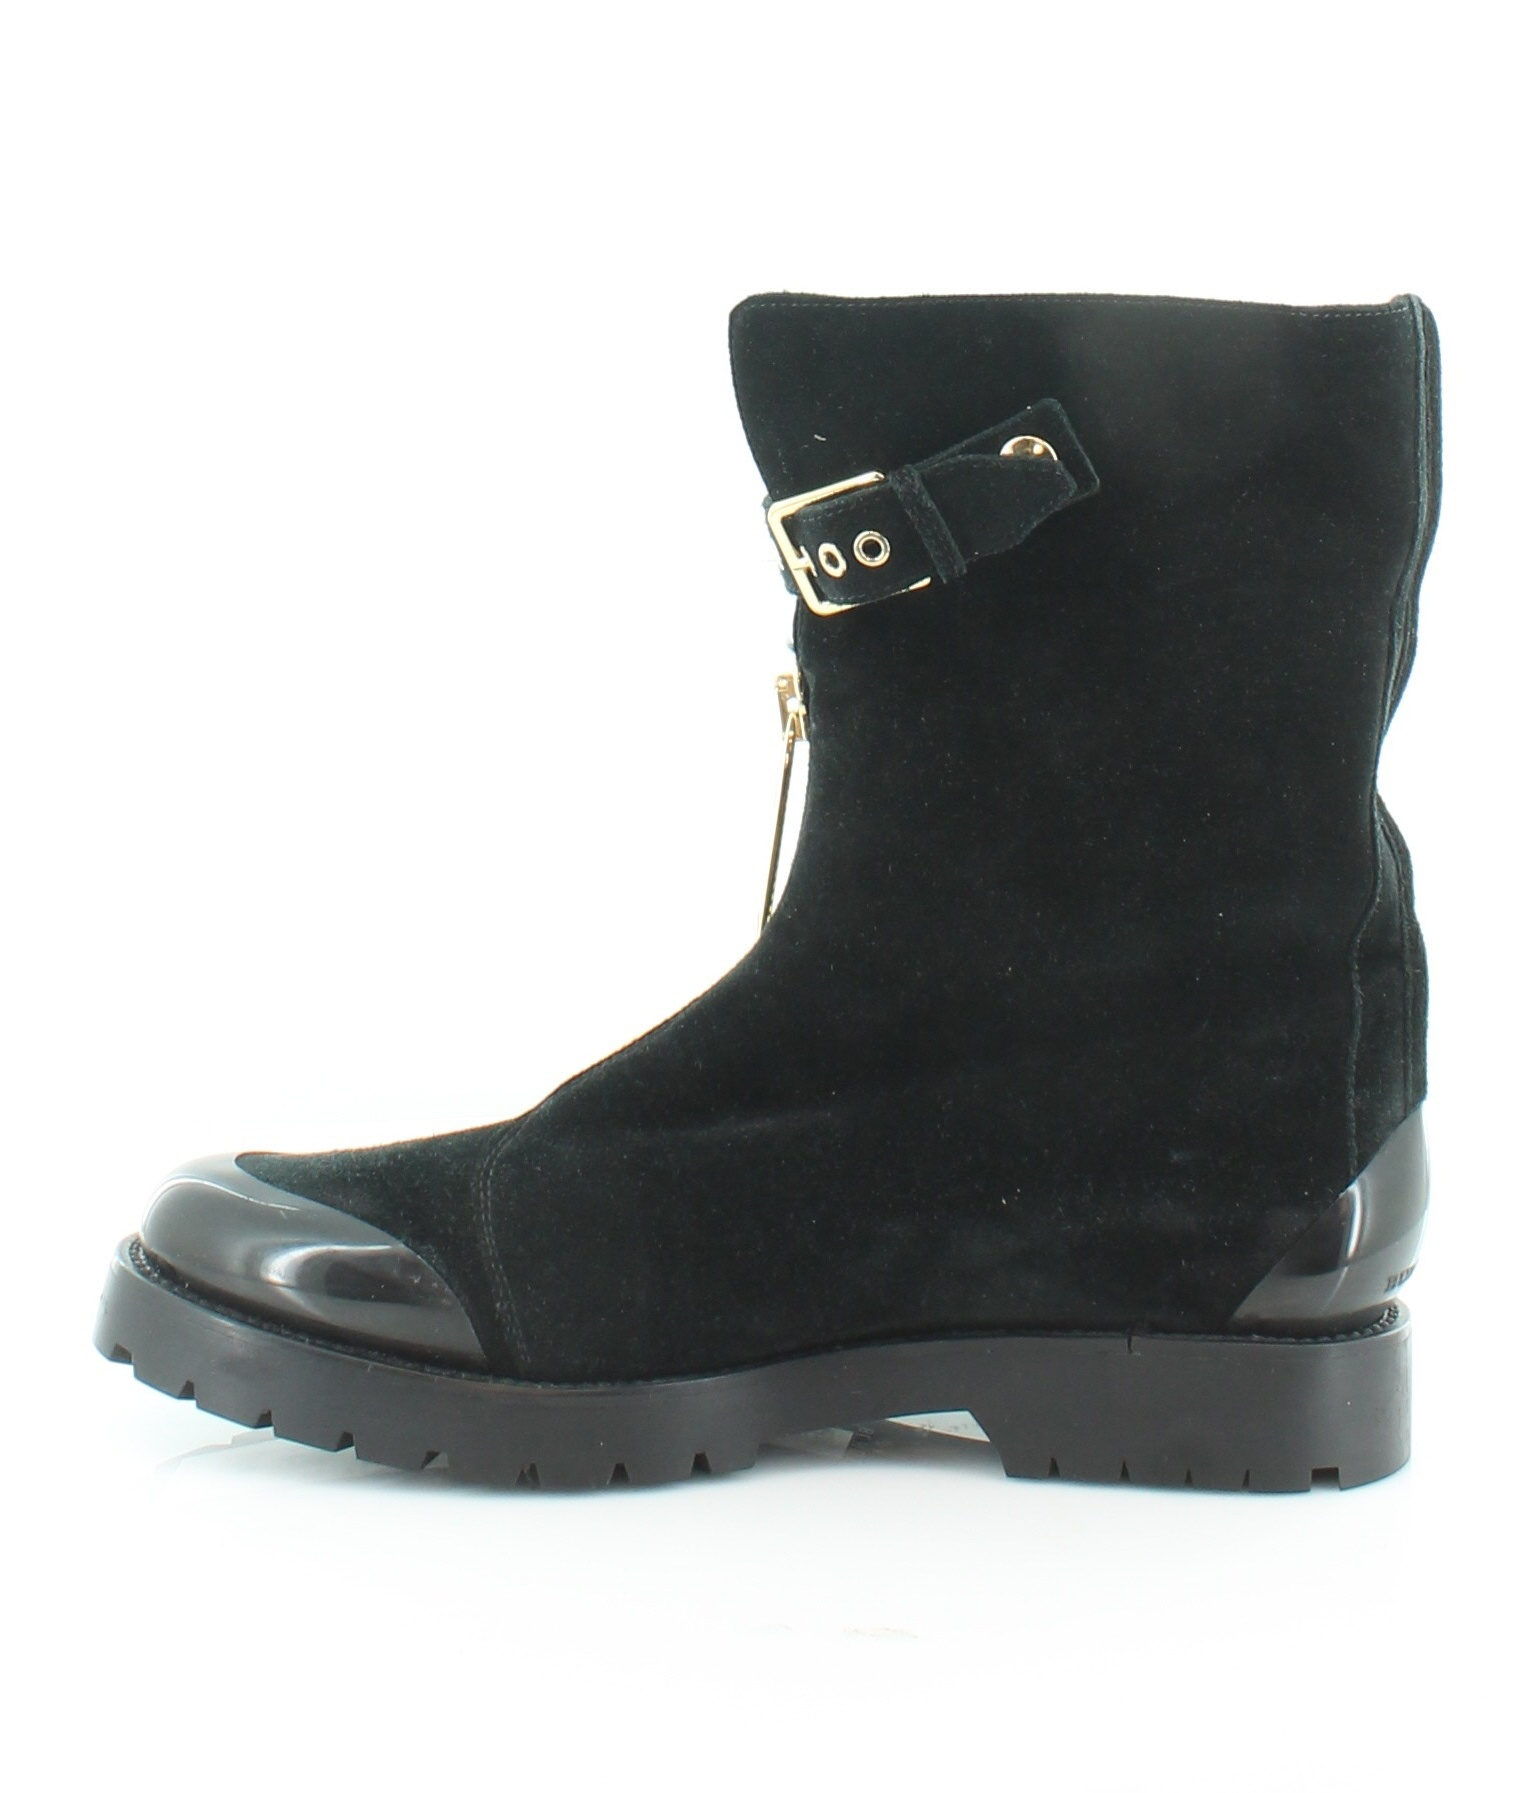 Burberry Quinsley Women's Boots Black Size 8.5 M